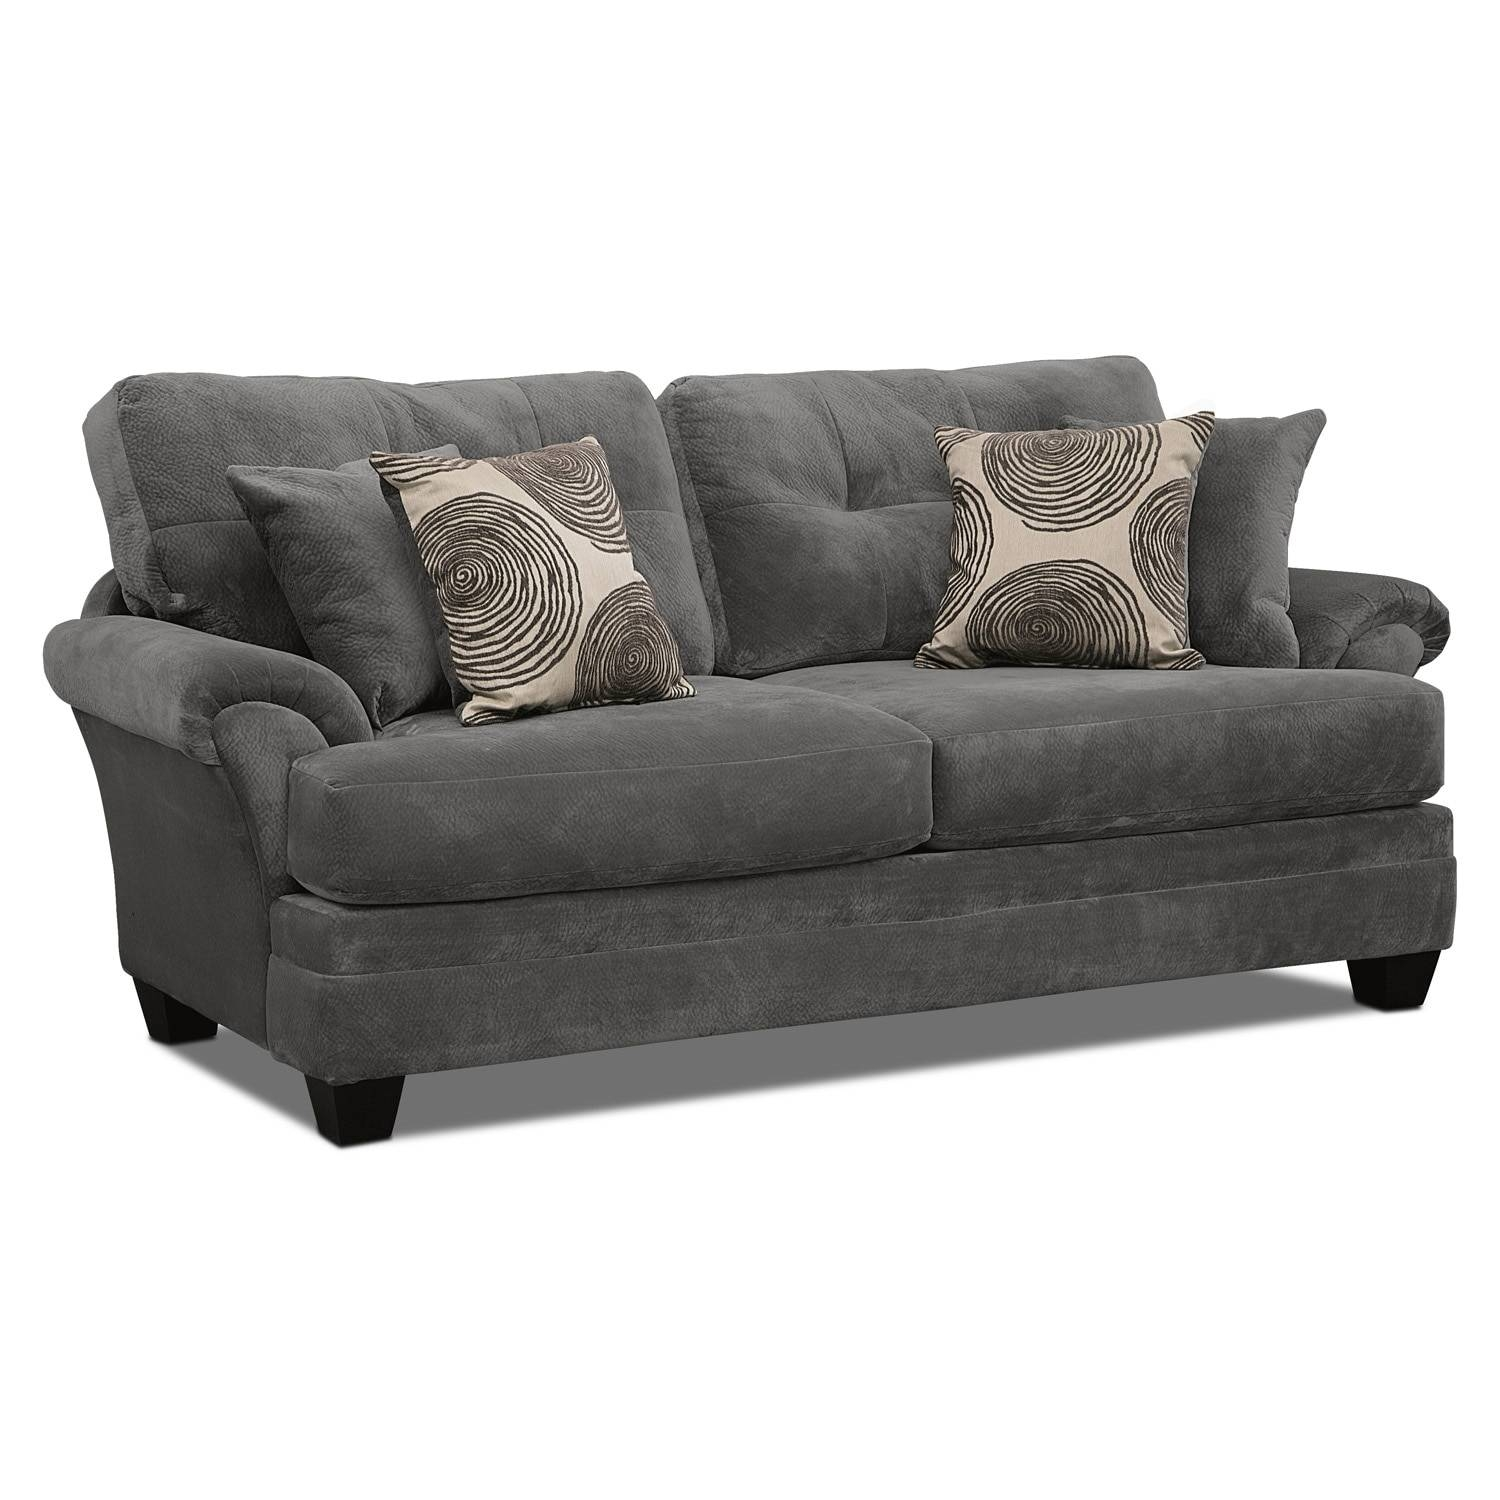 Sofas Center : Swivel Sofa Chair And Setround Chairsofa Set Round throughout Spinning Sofa Chairs (Image 24 of 30)